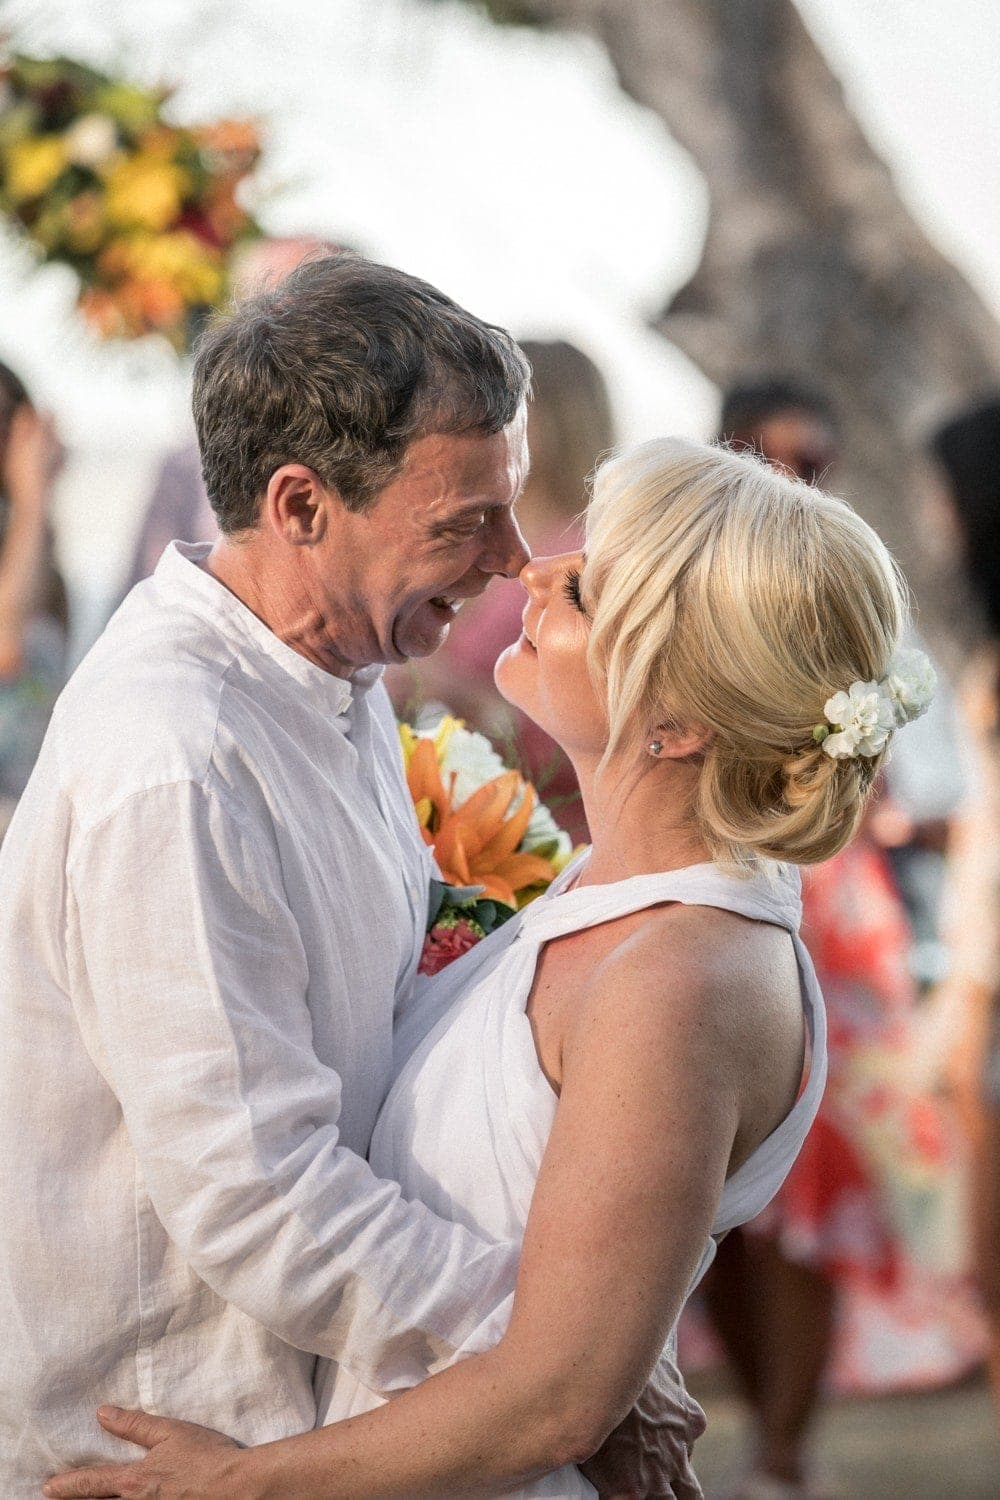 Just married couple kissing after wedding ceremony in Costa Rica.